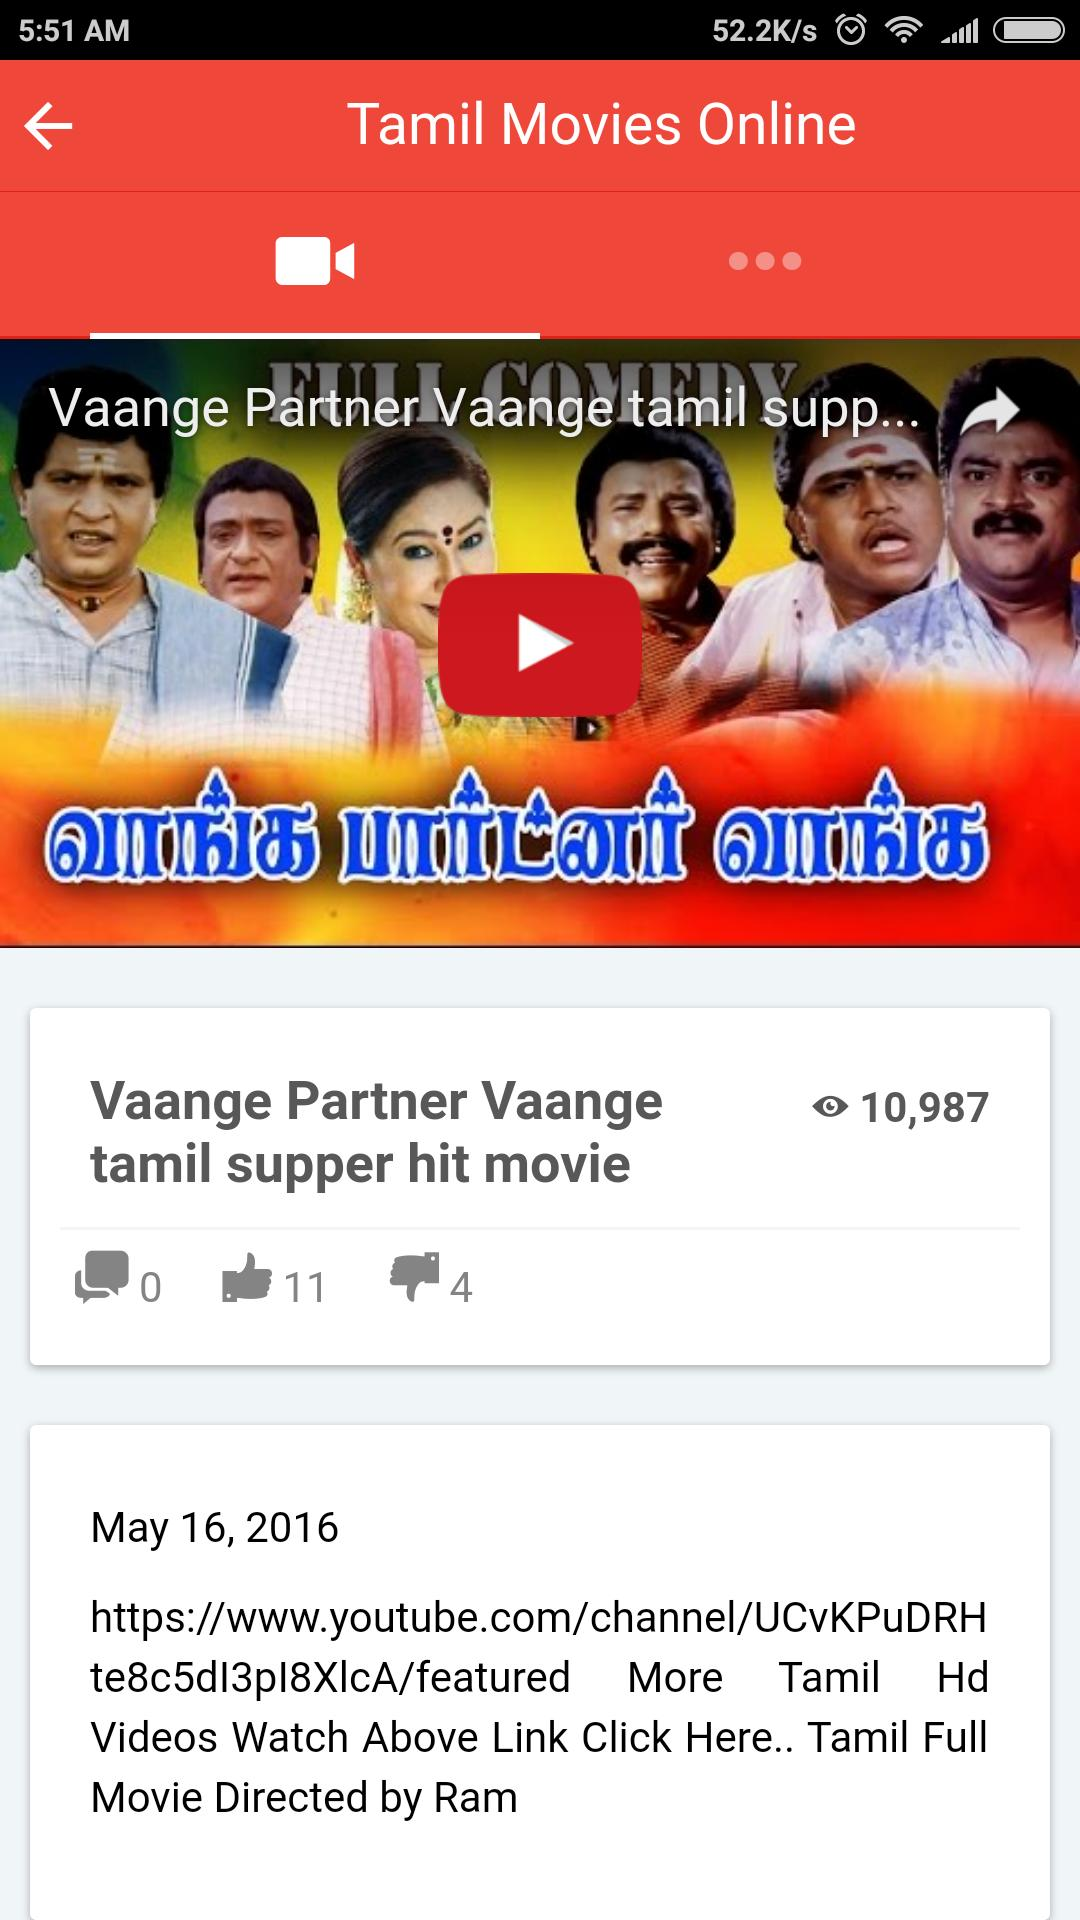 Tamil Movies Online for Android - APK Download